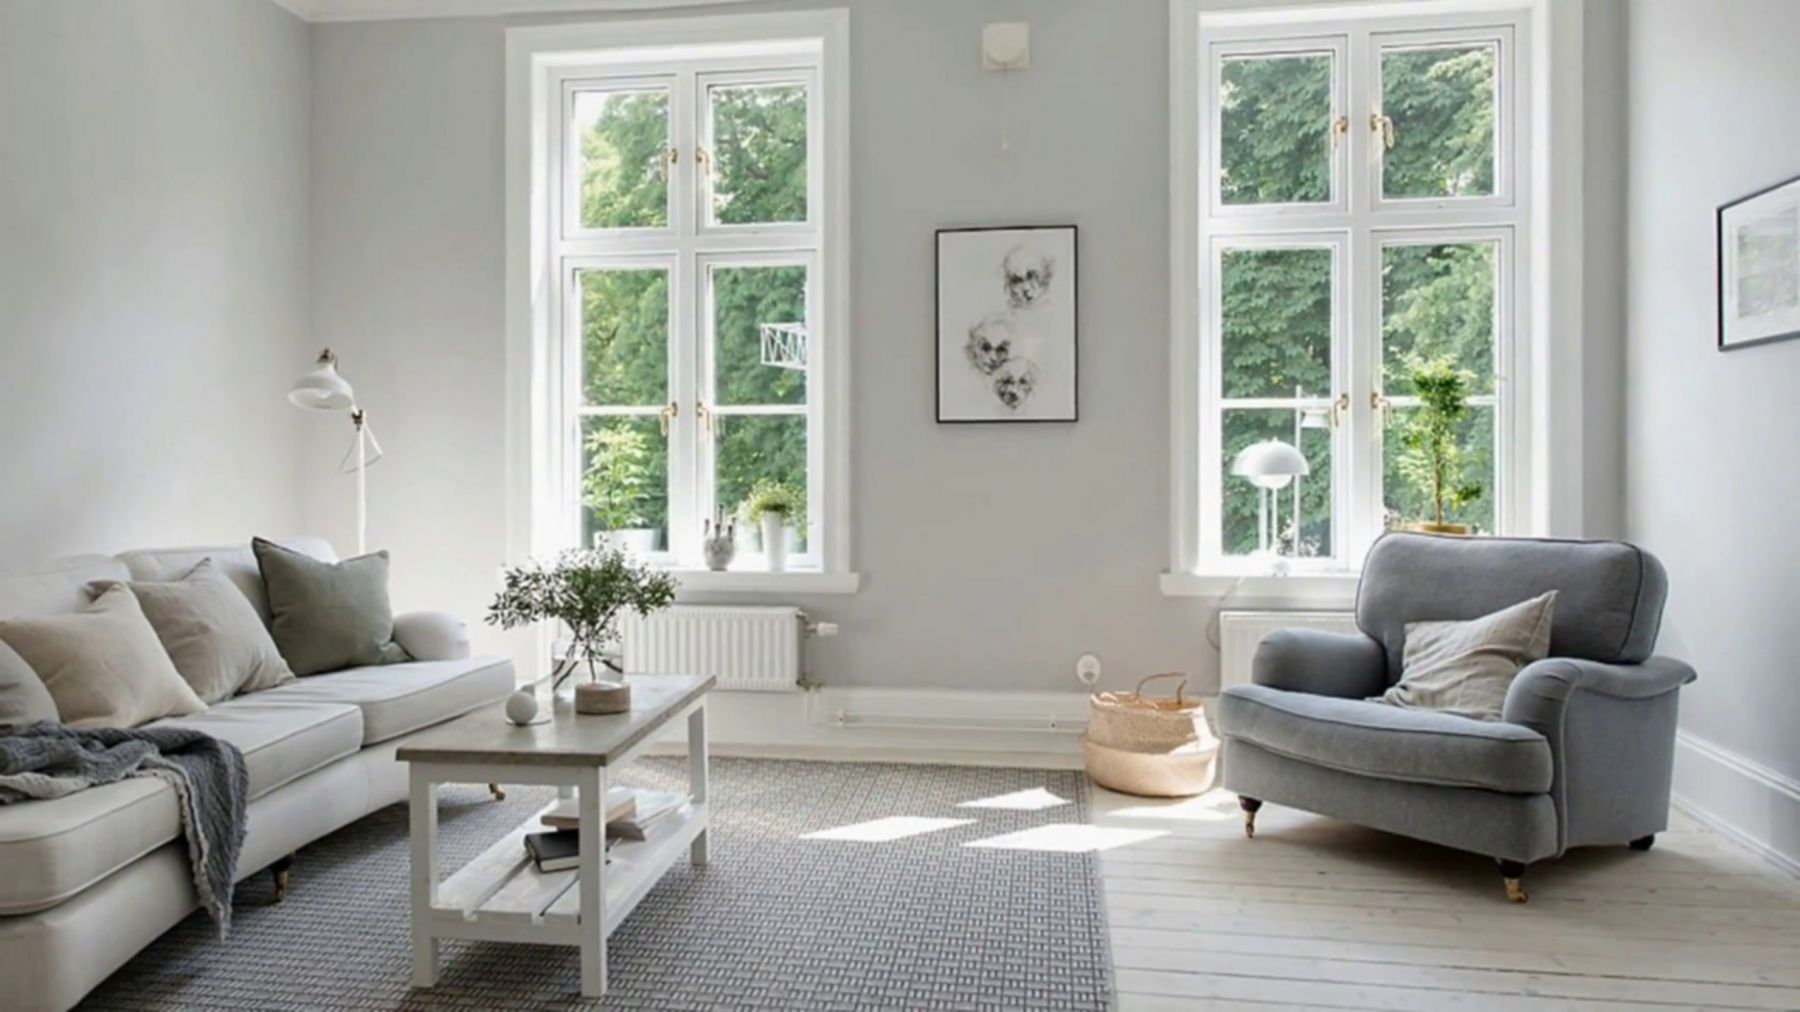 8 Stunning Scandinavian Living Room Design Ideas For Your Guest Comfortable Living Room Scandinavian Furniture Design Living Room Scandinavian Design Living Room